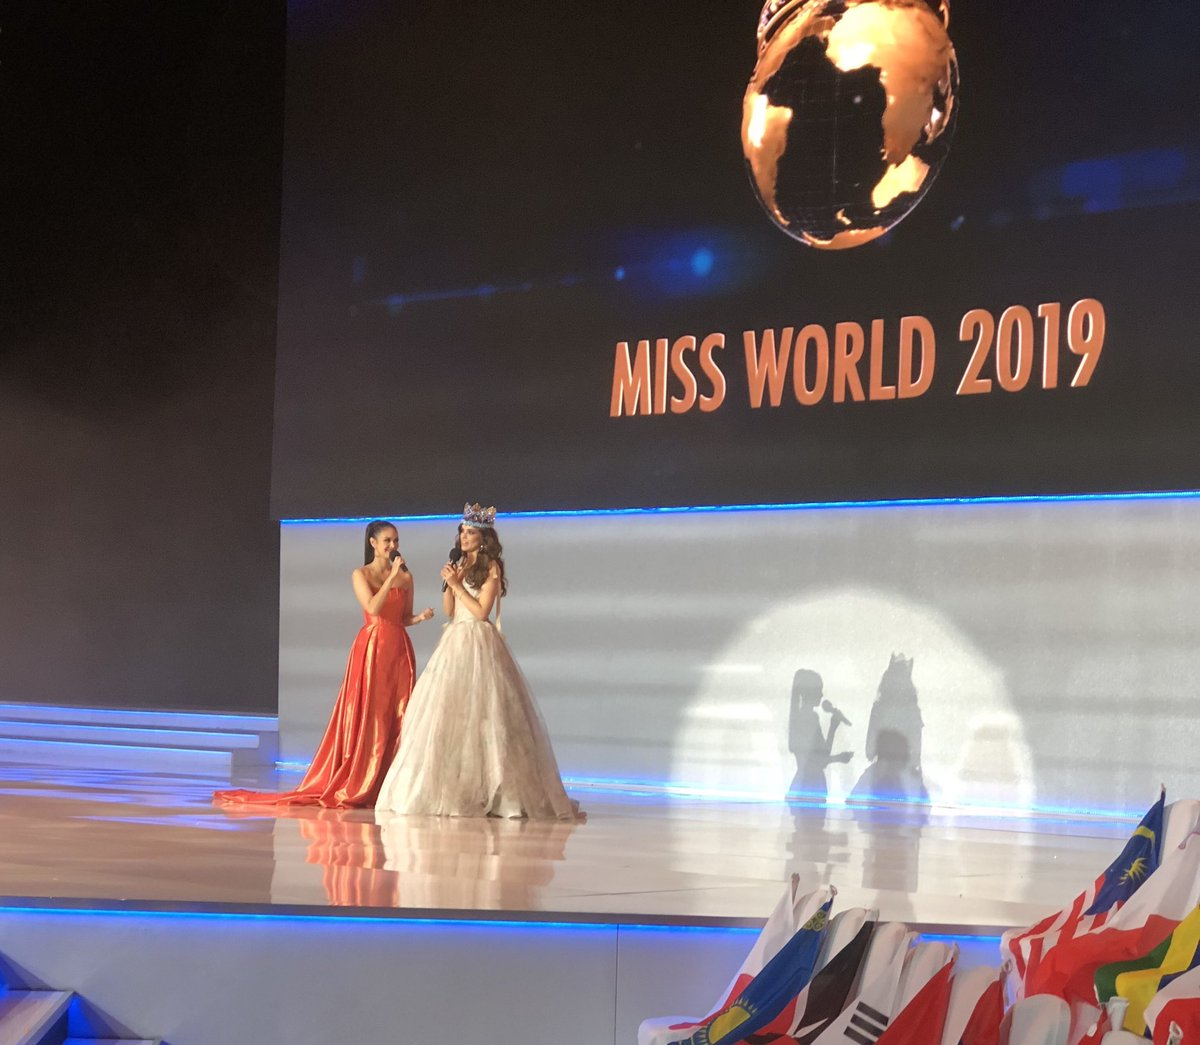 ✪✪✪ MISS WORLD 2019 - COVERAGE ✪✪✪ - Page 25 ELwe5ToW4AAhCSY